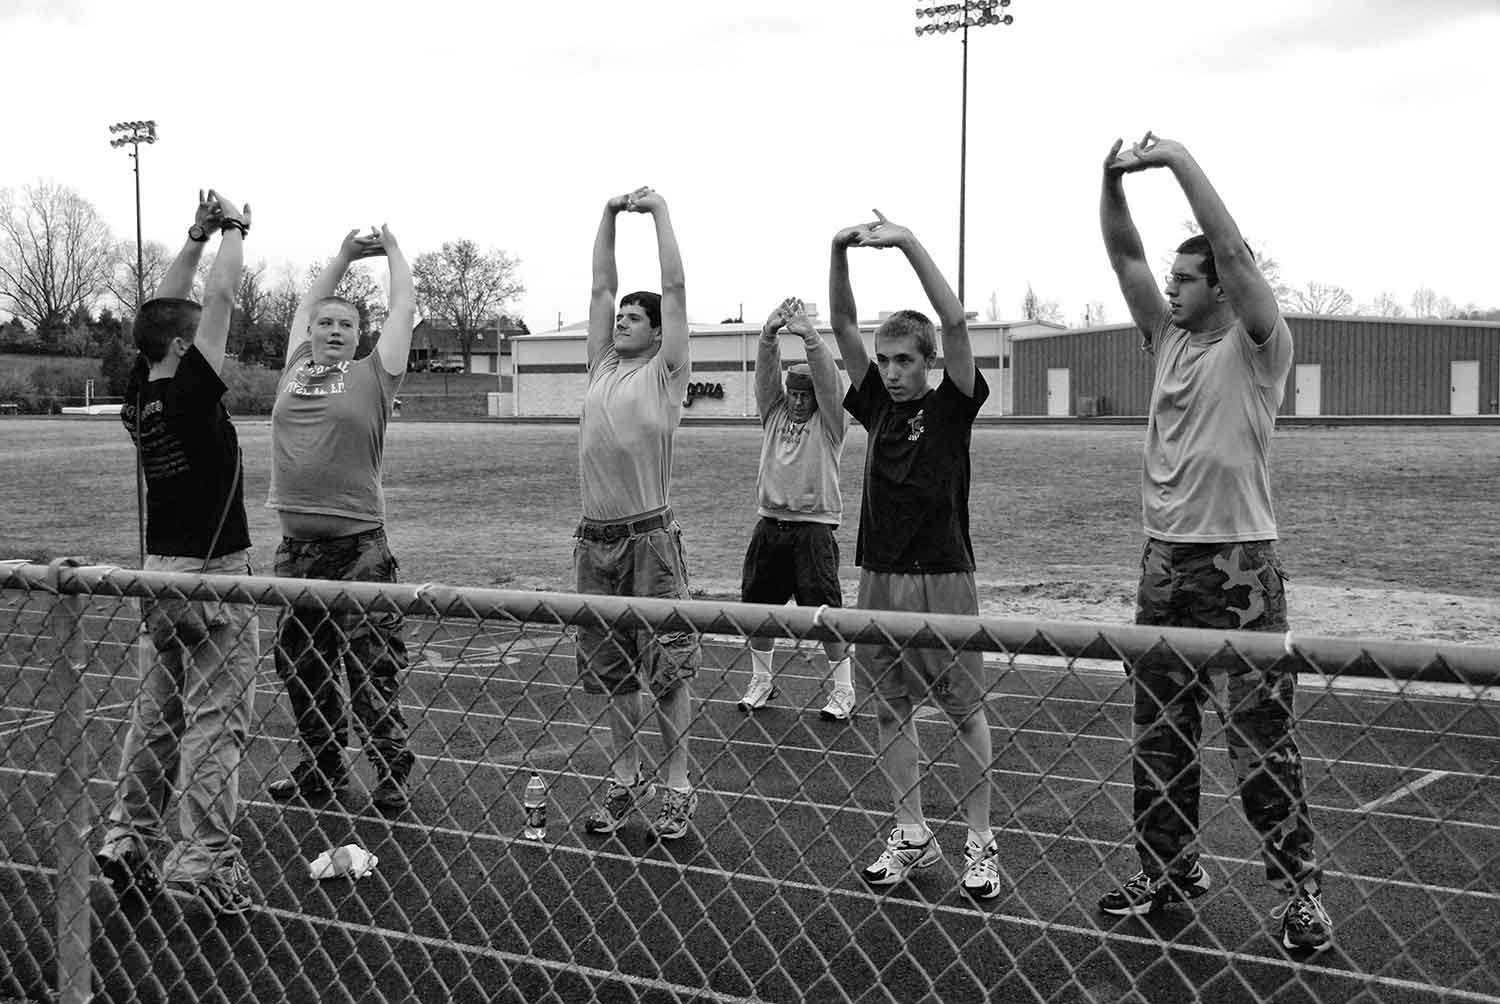 Left To Right: Robert Sopha, Adam Hunter, Tyler Allen, Col. Salveson, Noah Carr, and J. Jeffers. Part of the Raiders team stretches in preparation for a ROTC two-and-a-half mile run. photo by James Bolton - 2009